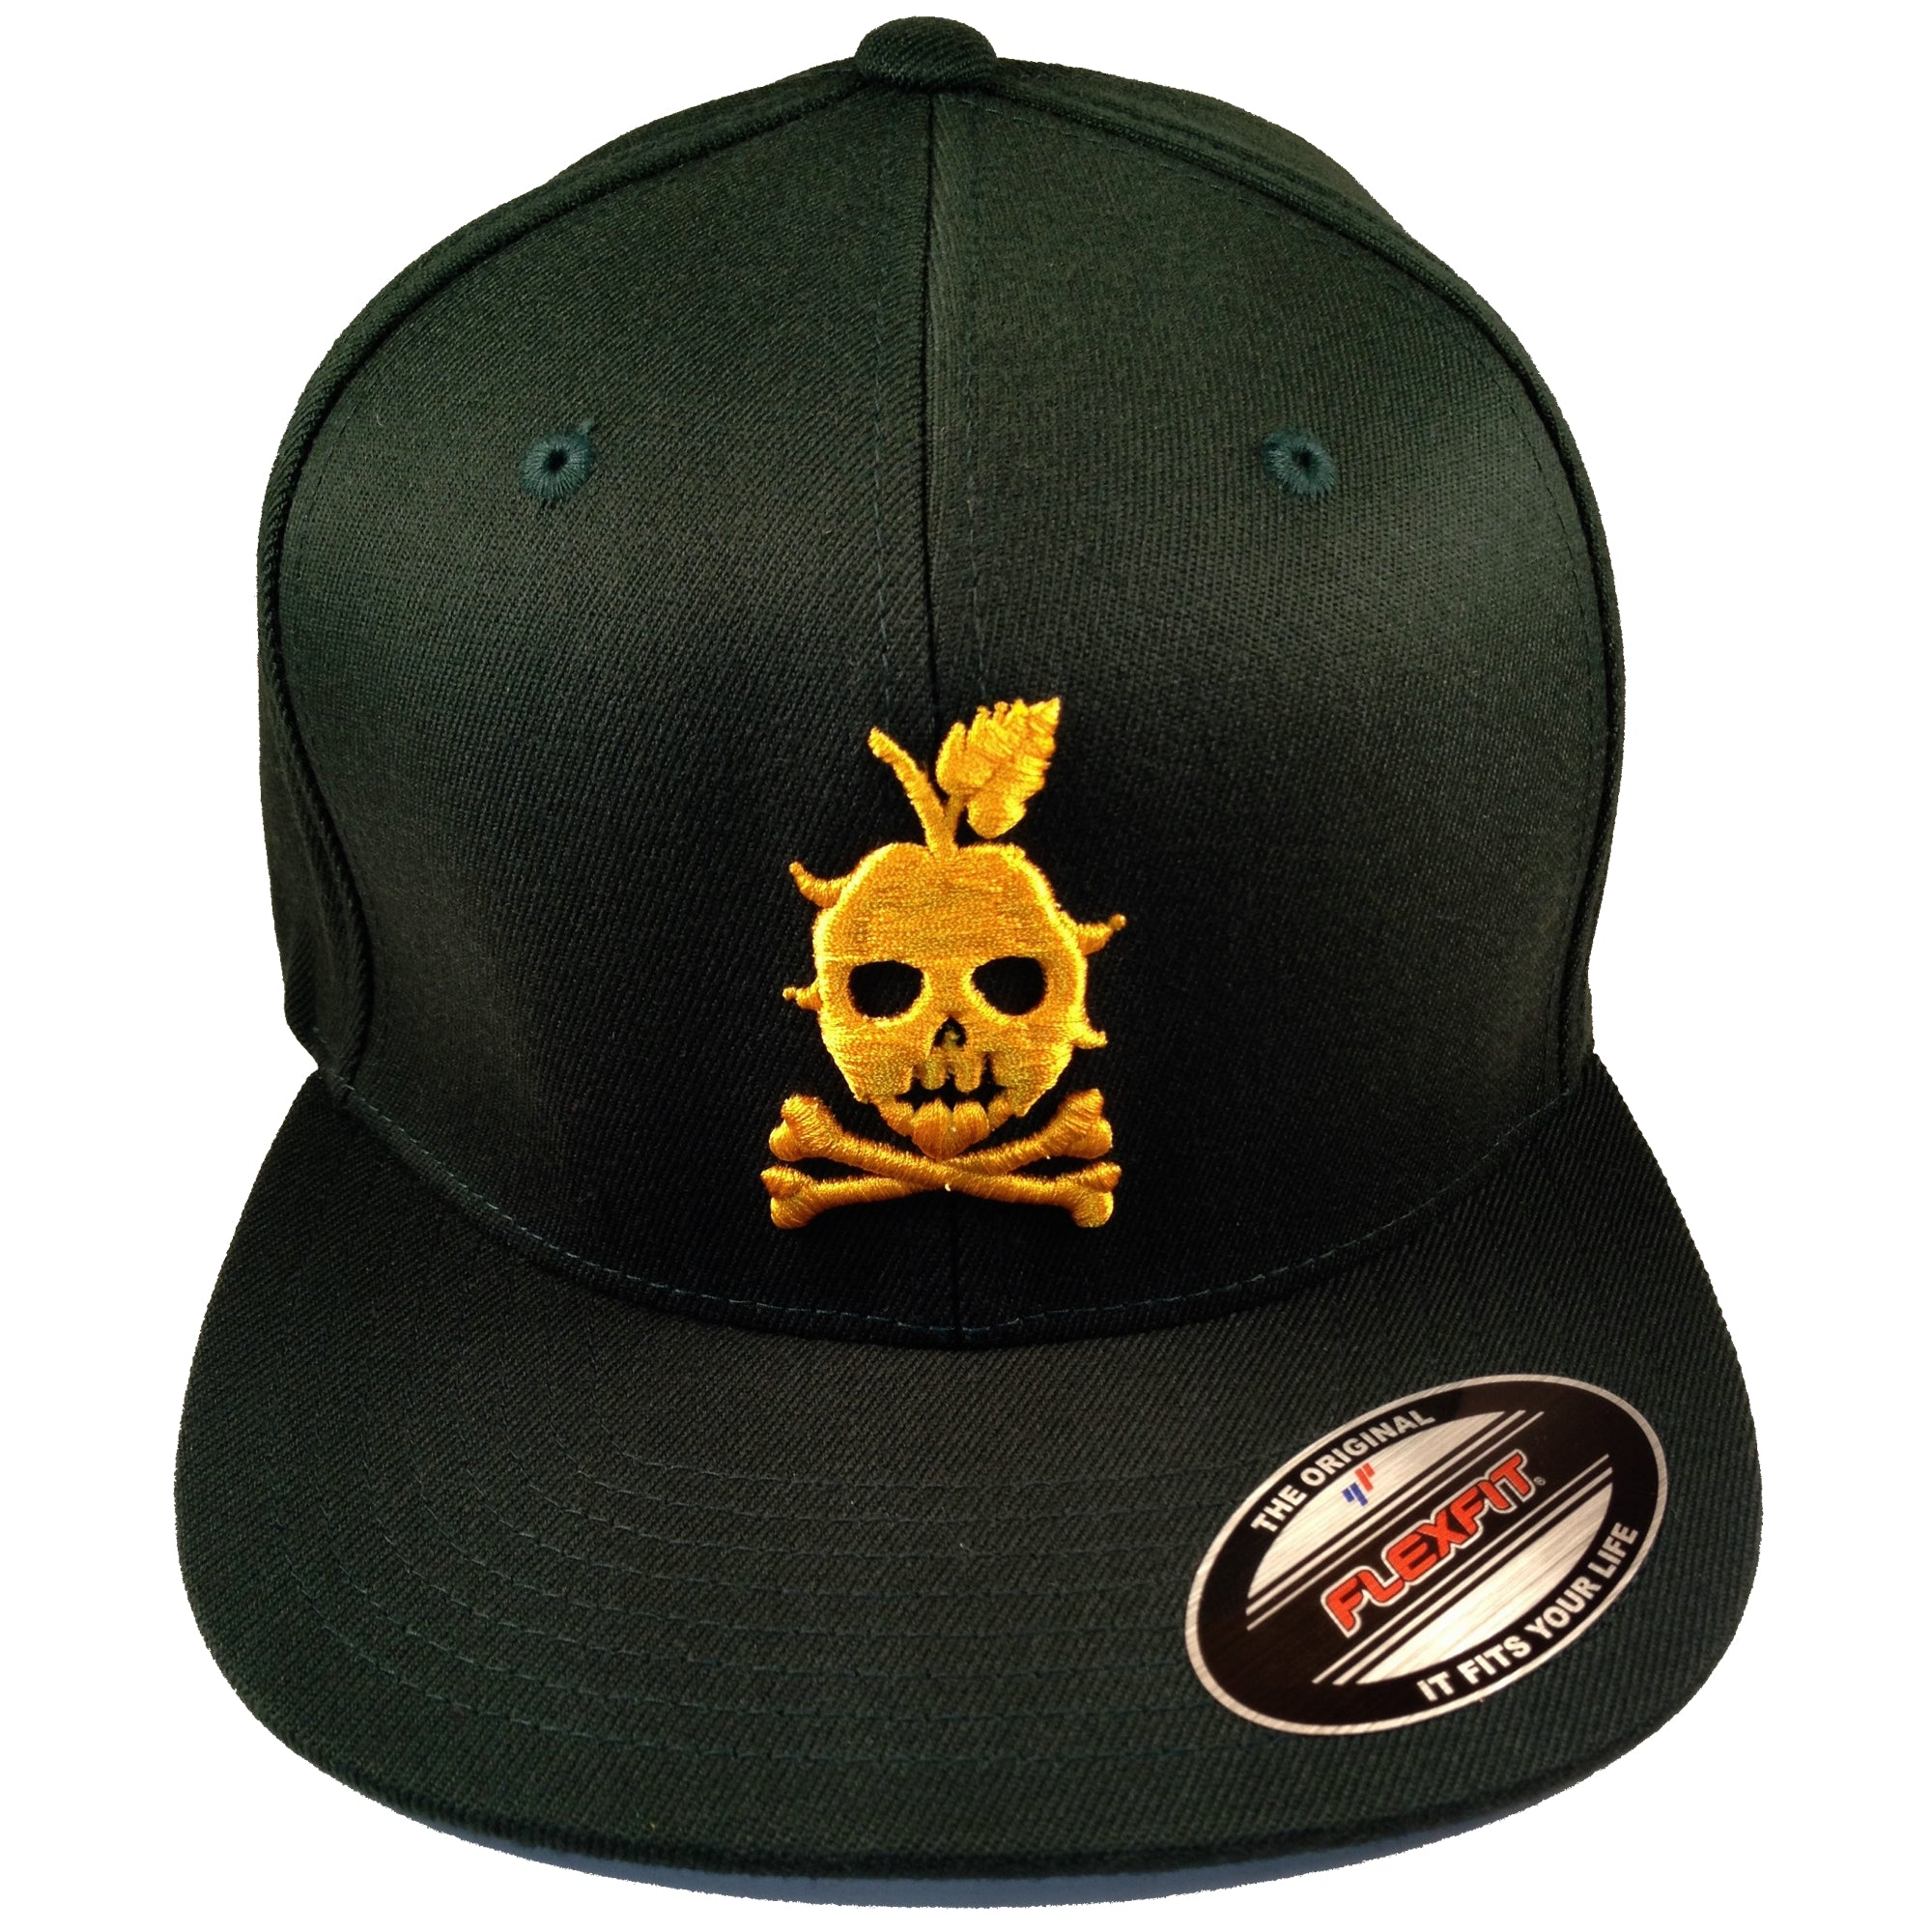 THE LOCAL CAP (Green and Gold)